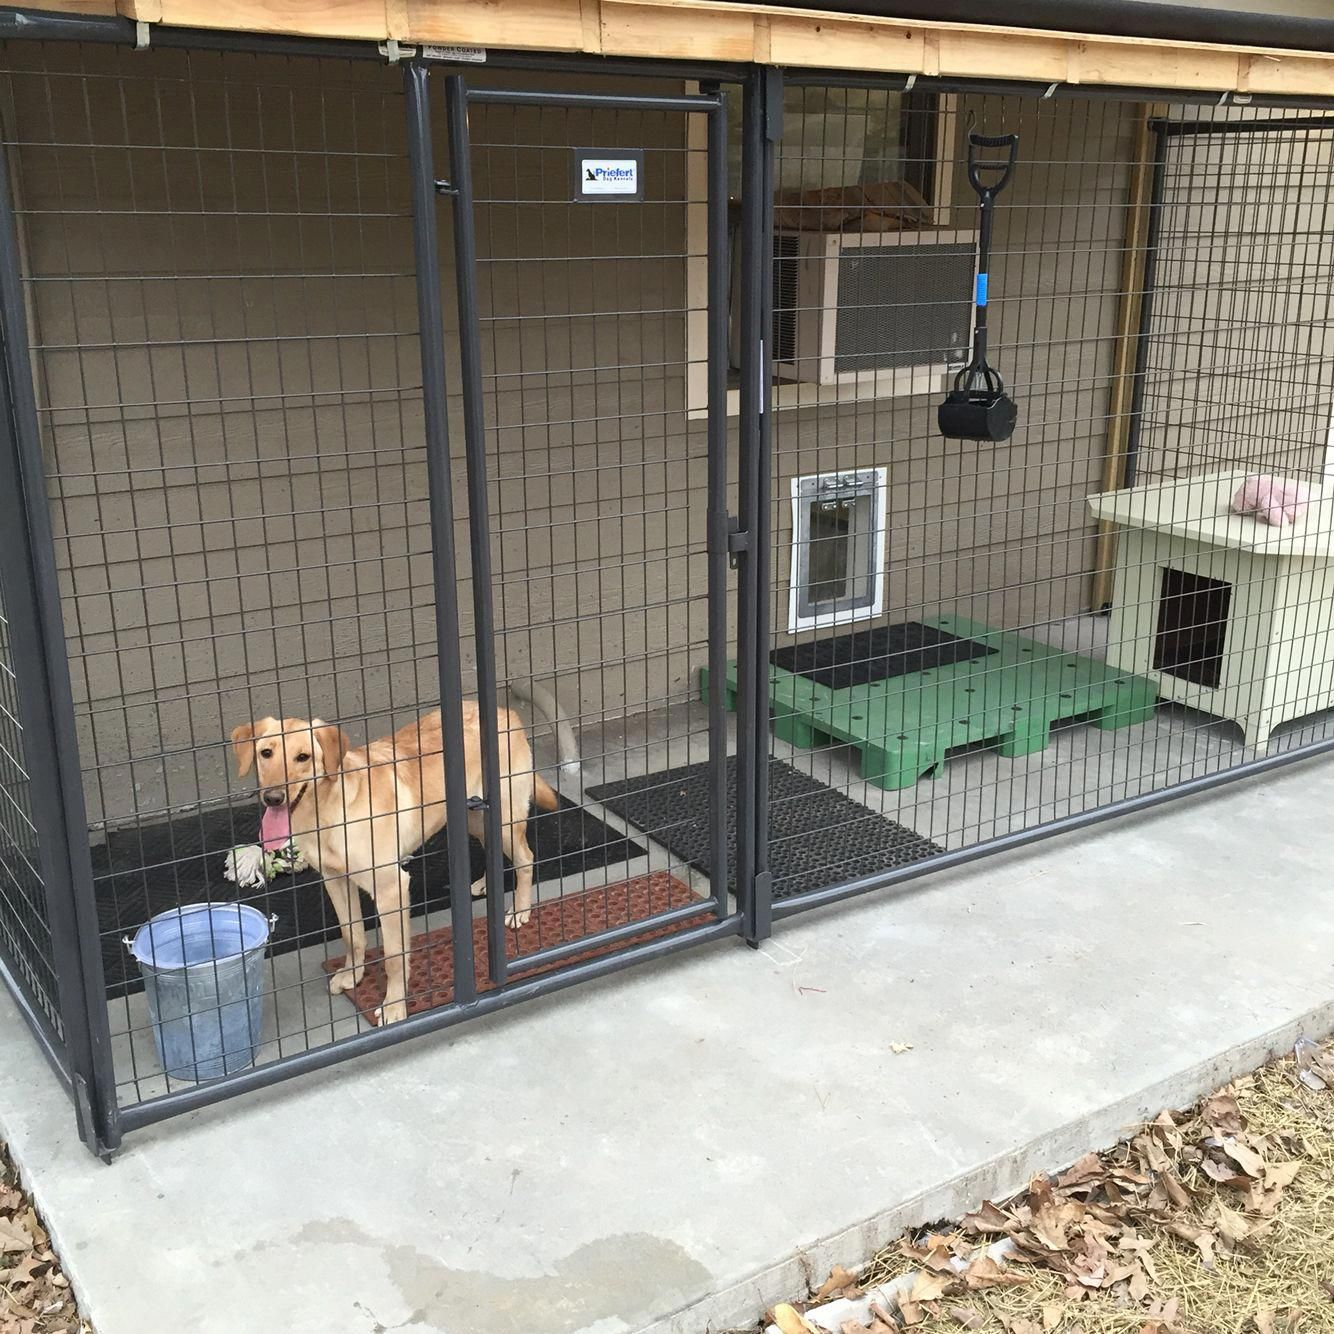 Dog House Kennel Makes The Dog House Connected To The Doggie Door